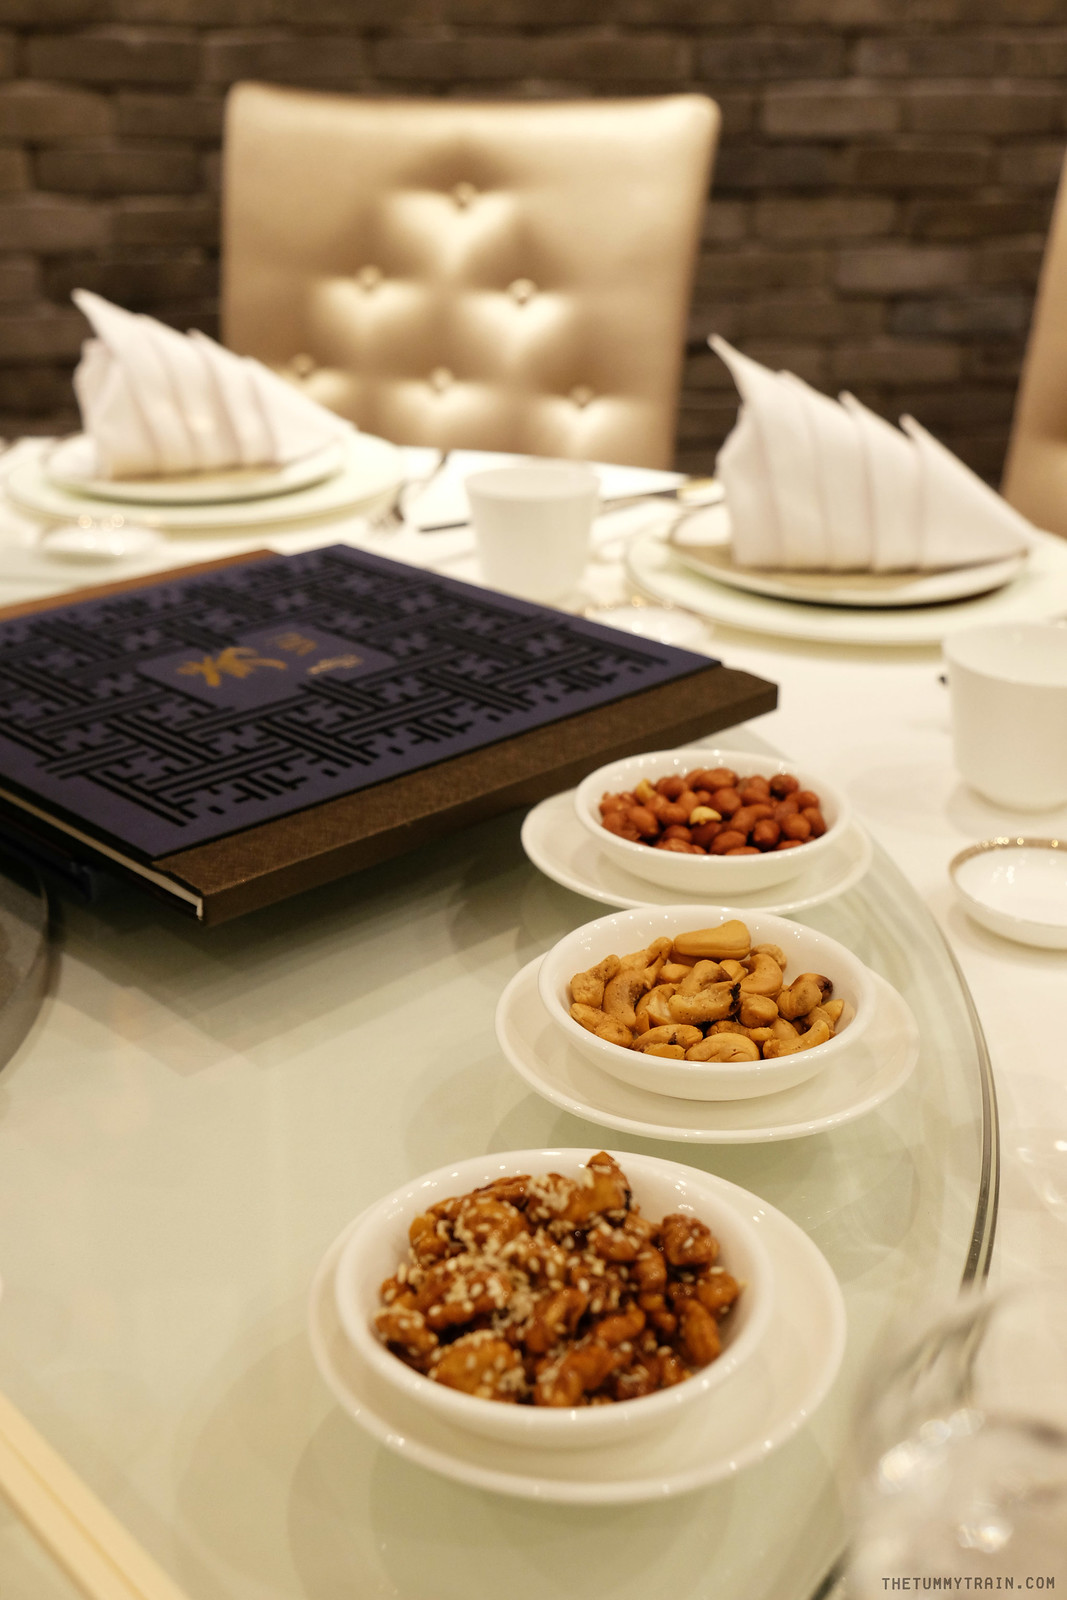 27994529764 f96aeea564 h - An evening of elegance and excellence at Xiu Fine Cantonese Dining